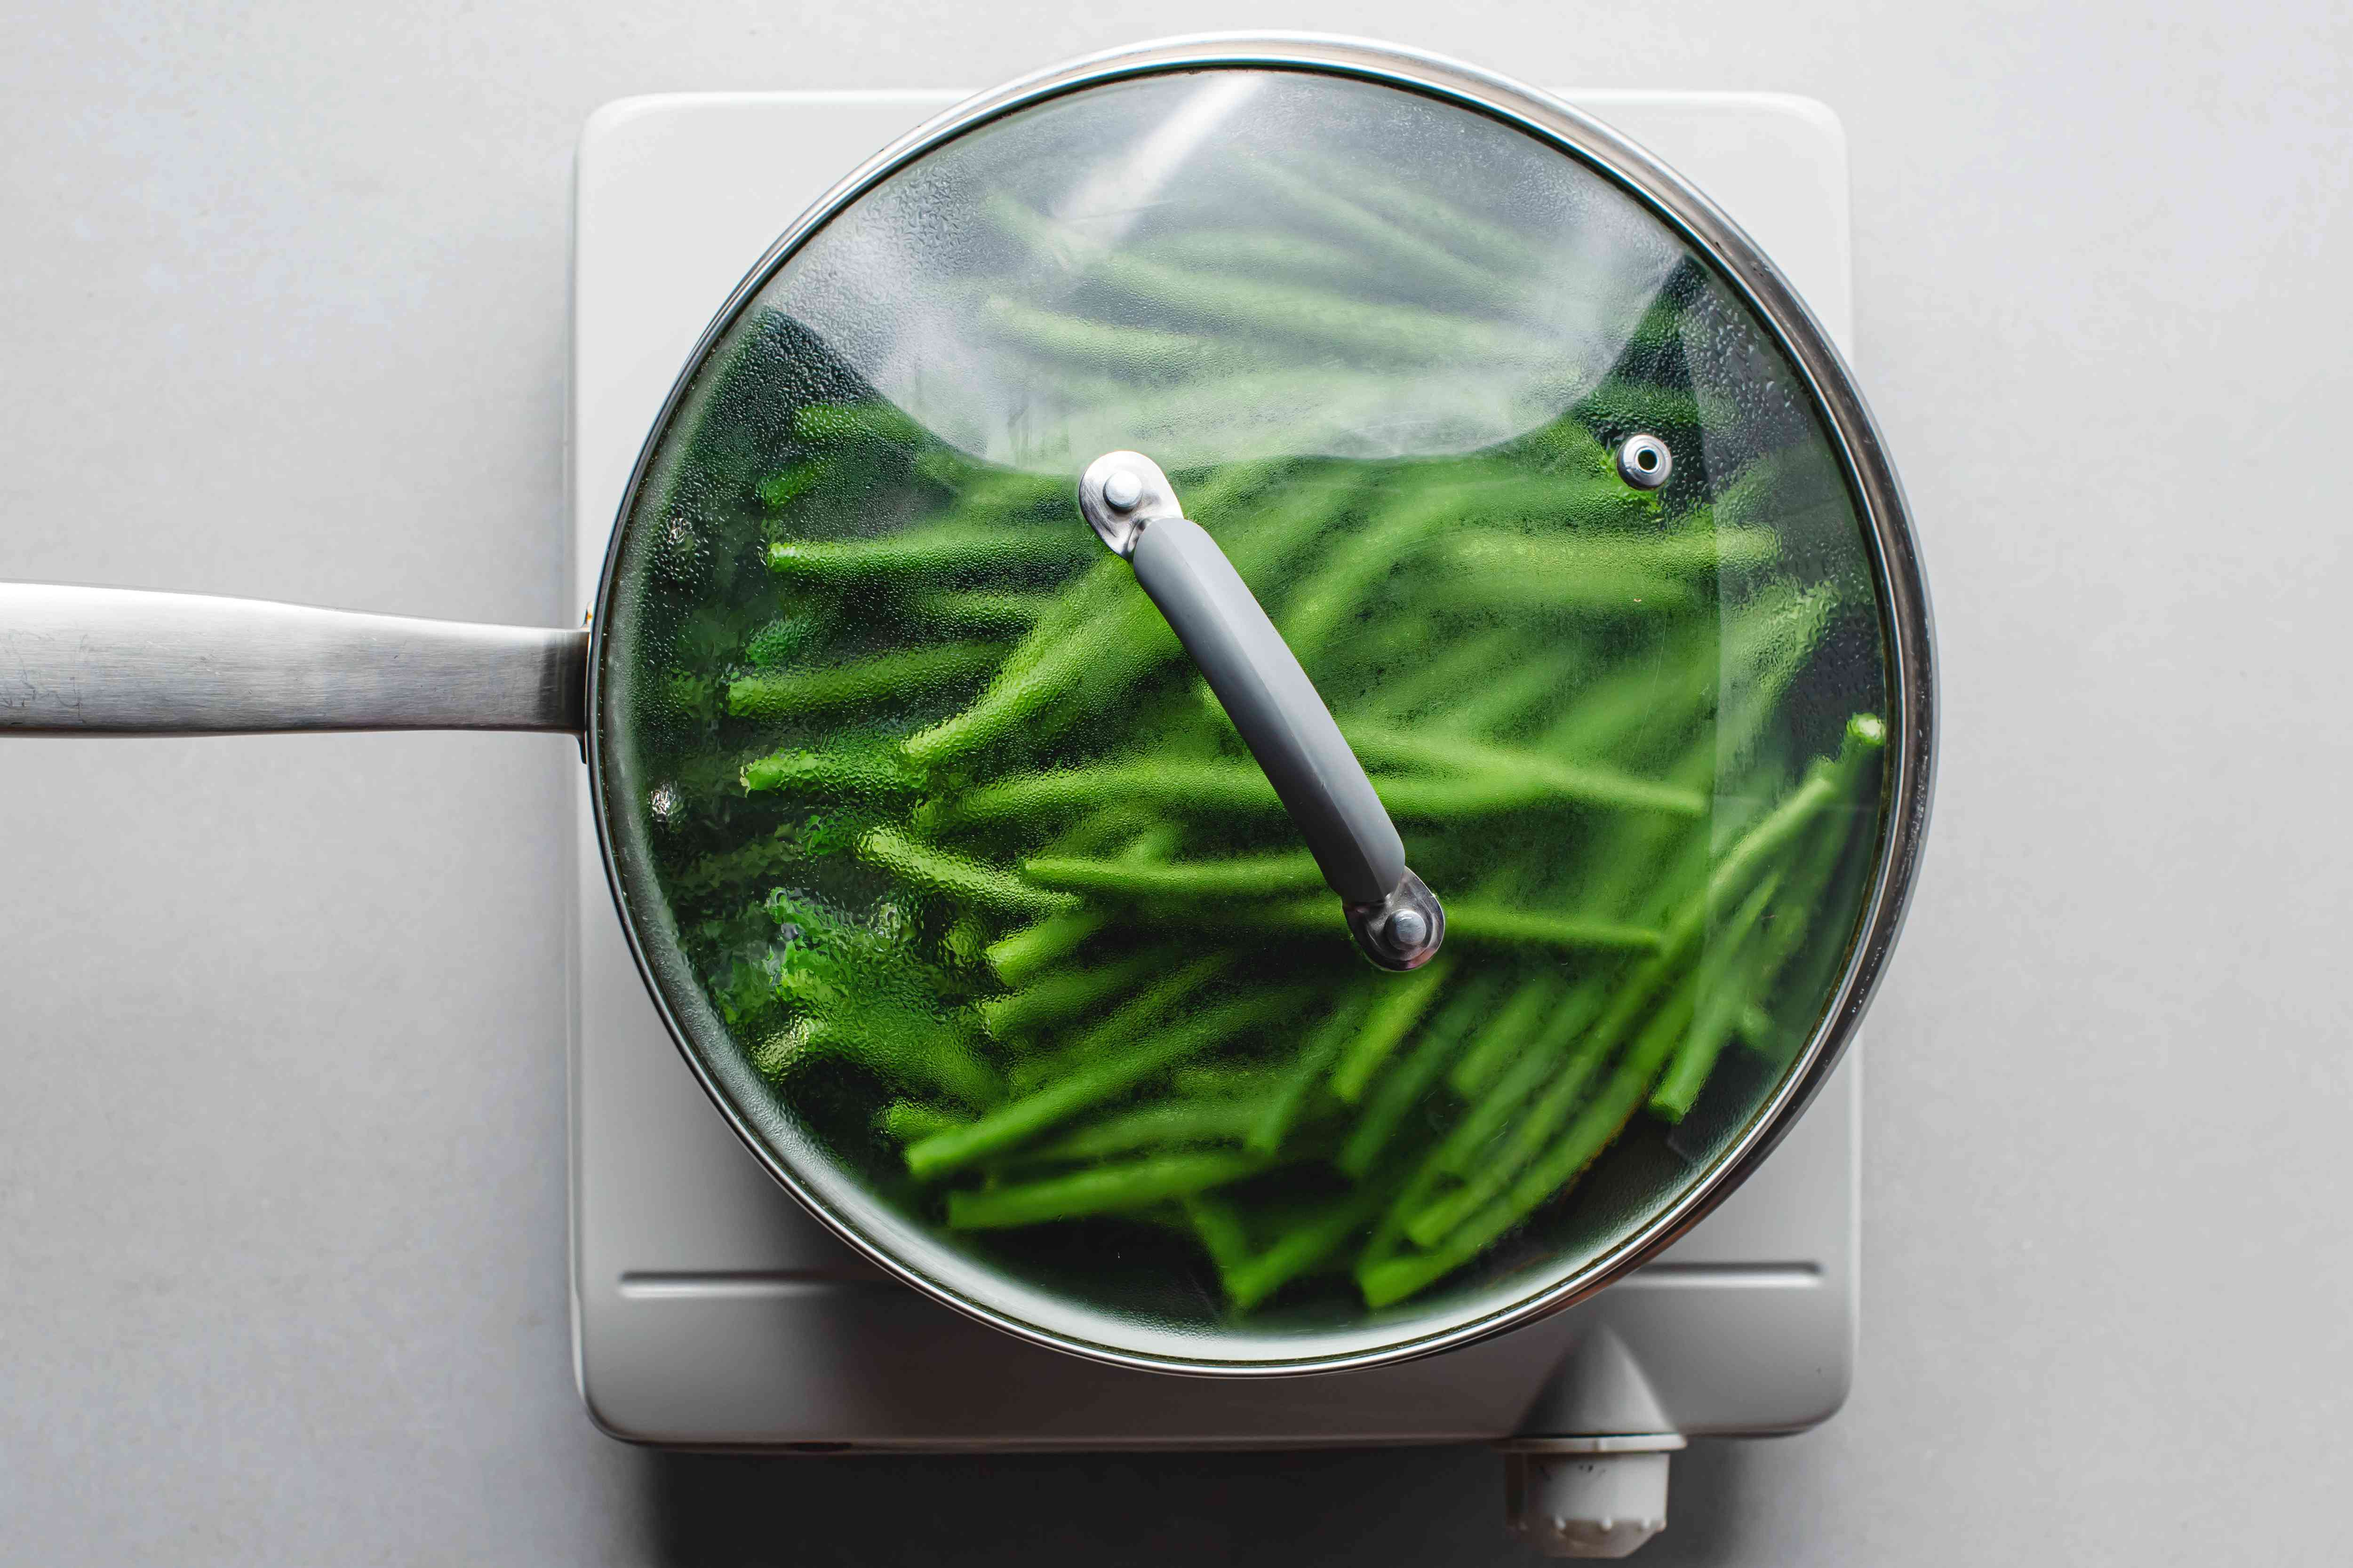 green beans cooking in a covered saucepan